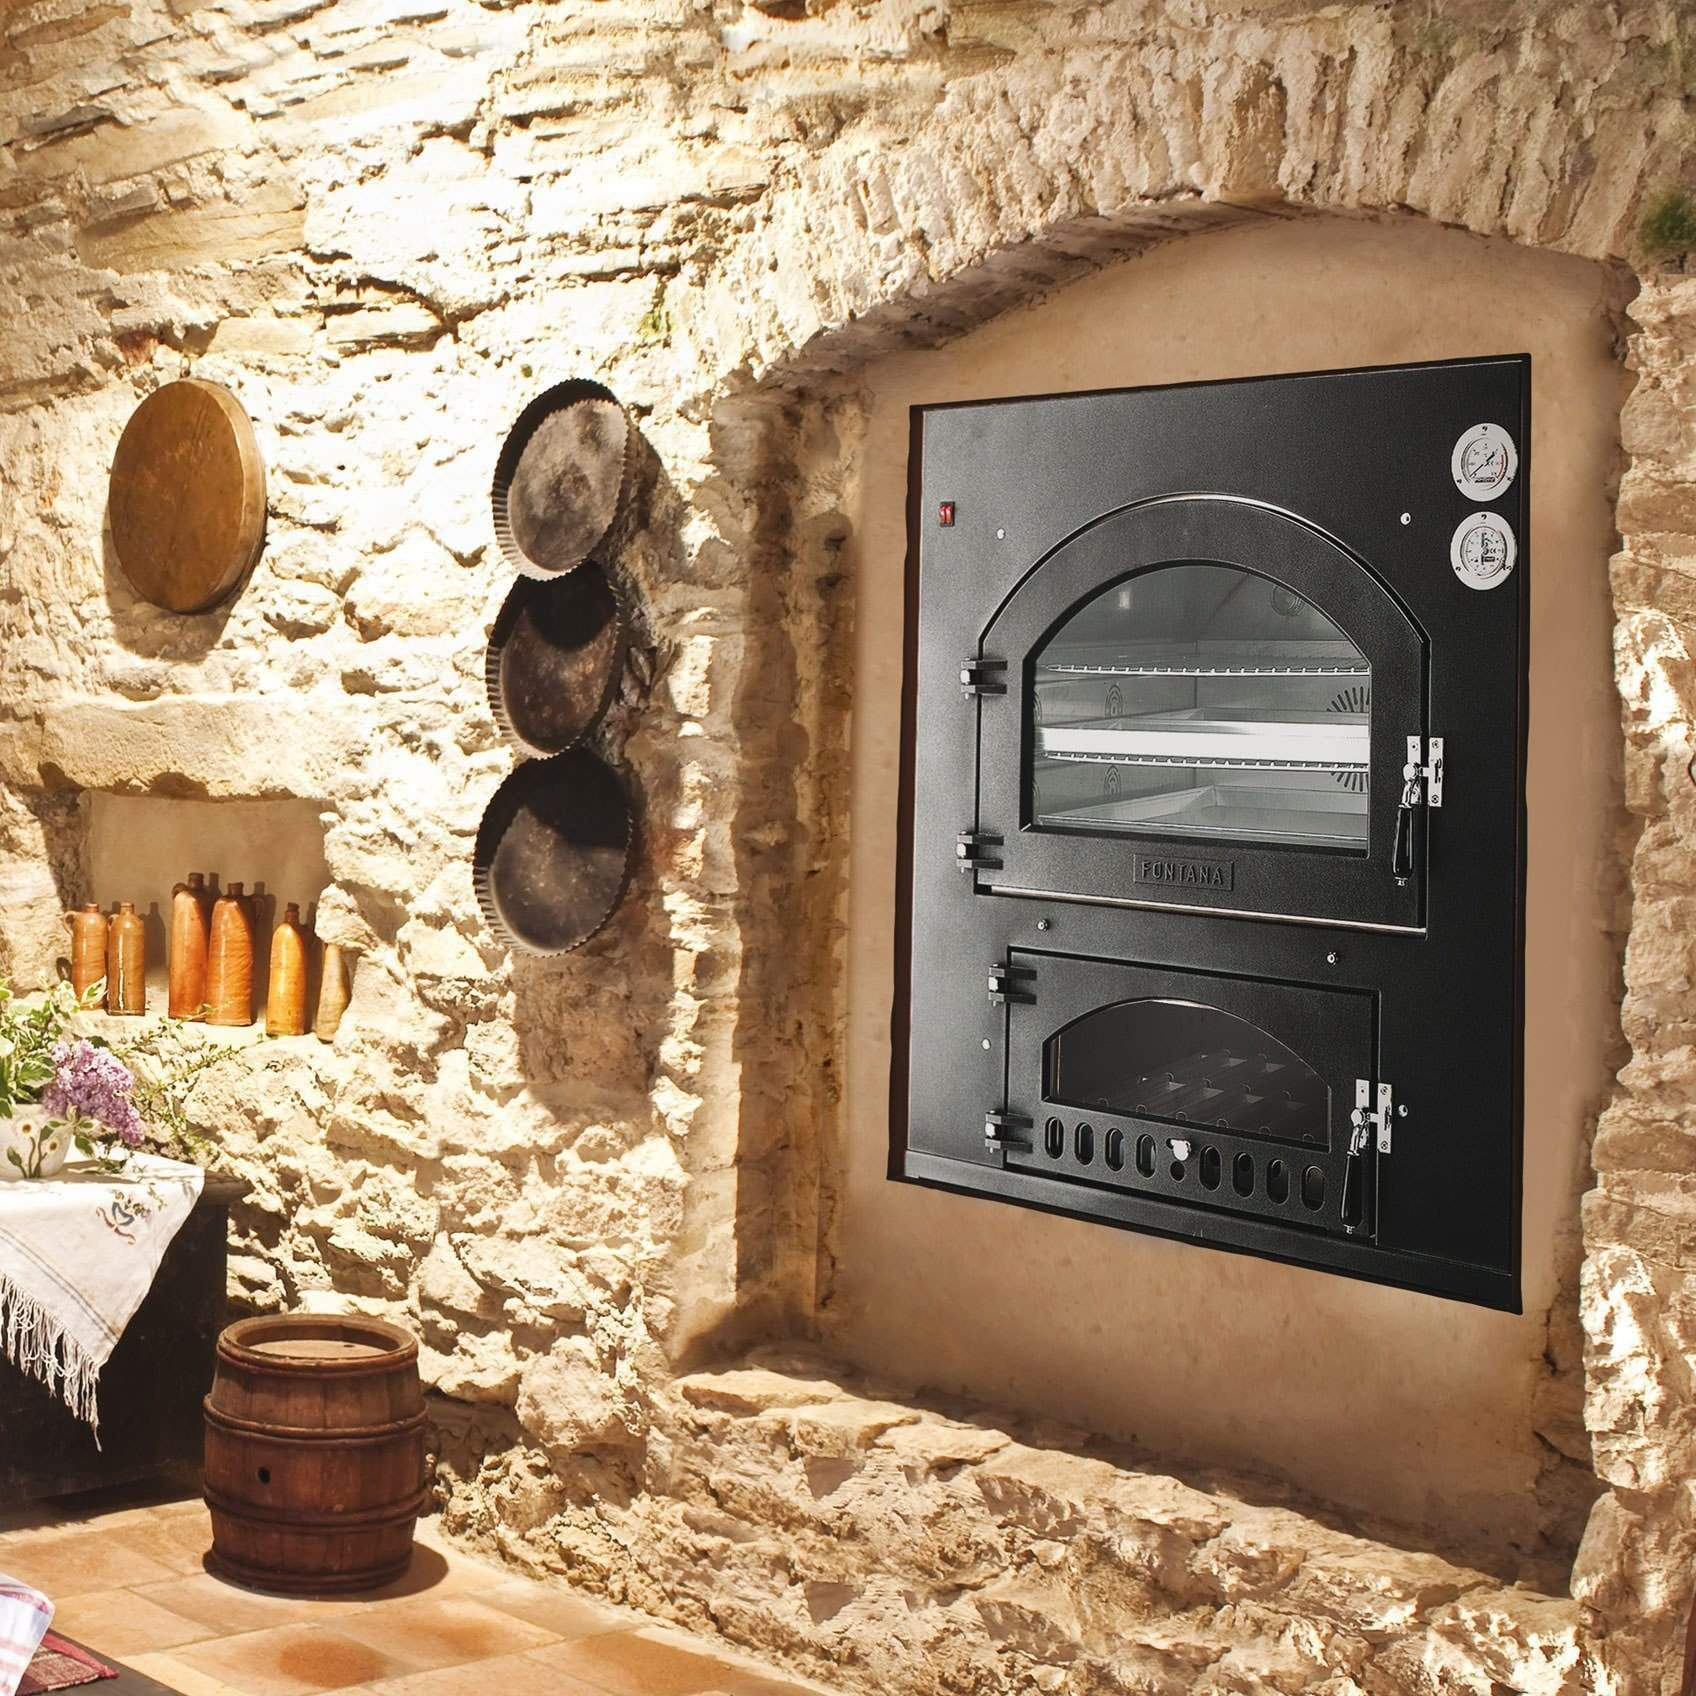 Fontana Pizza Oven The Inc Q Built-in Wood-Burning Oven